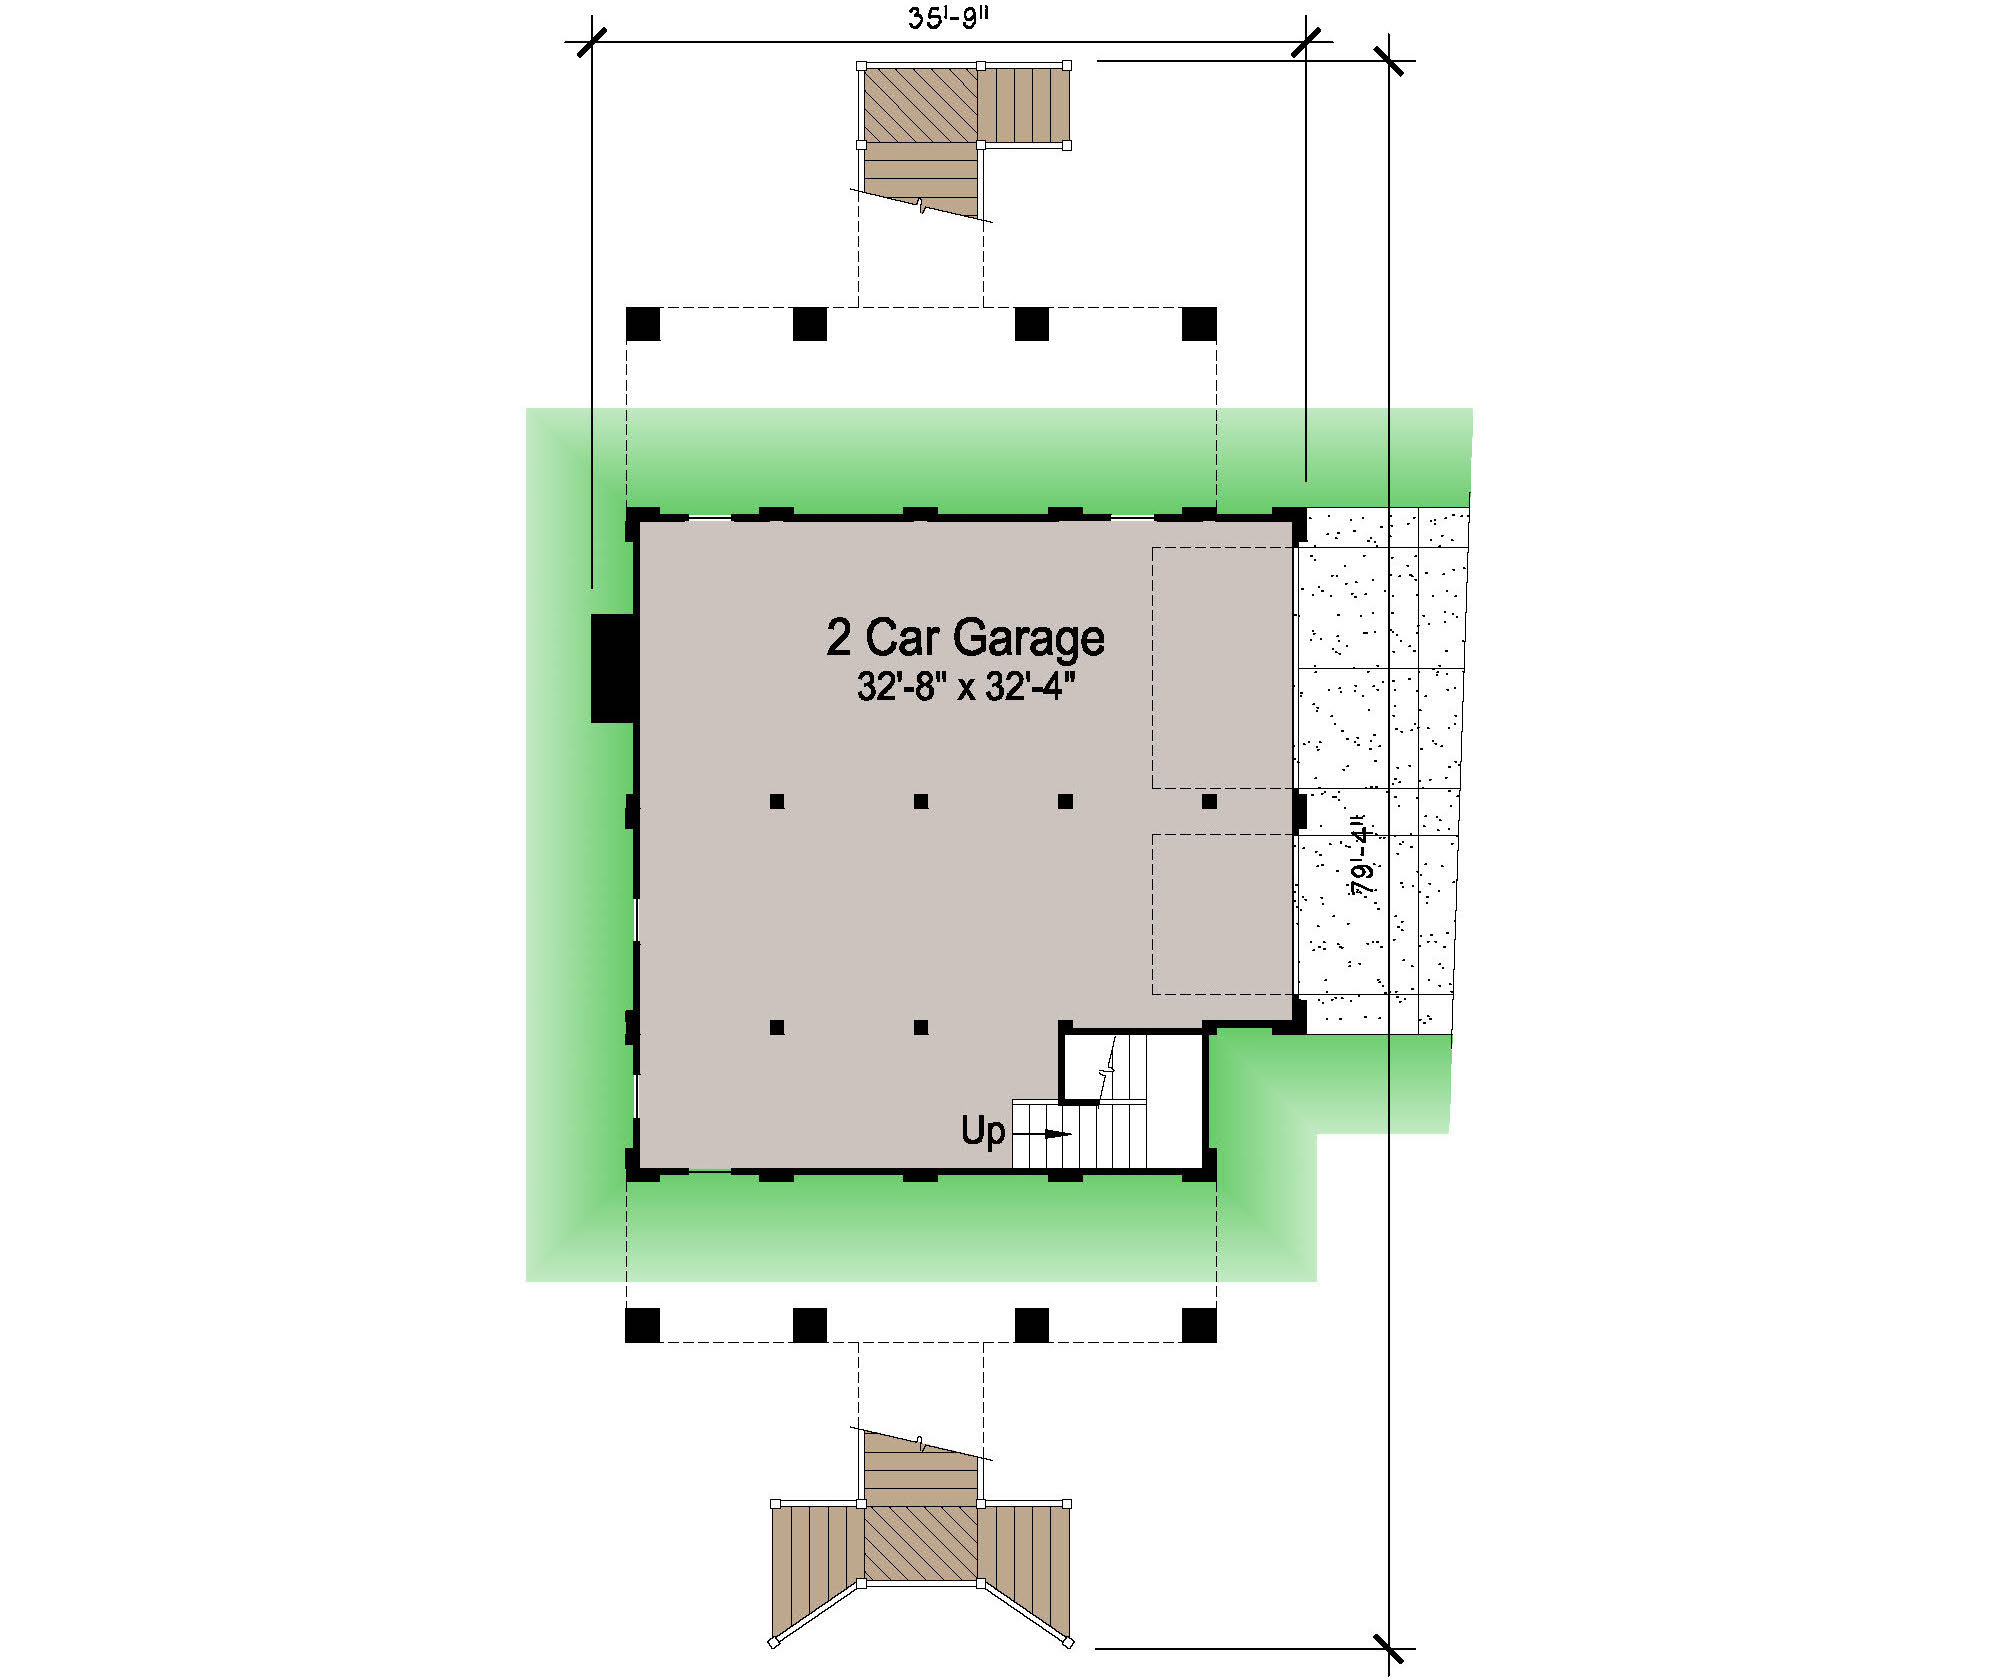 Inverted beach house plans 100 inverted beach house plans for Inverted beach house plans